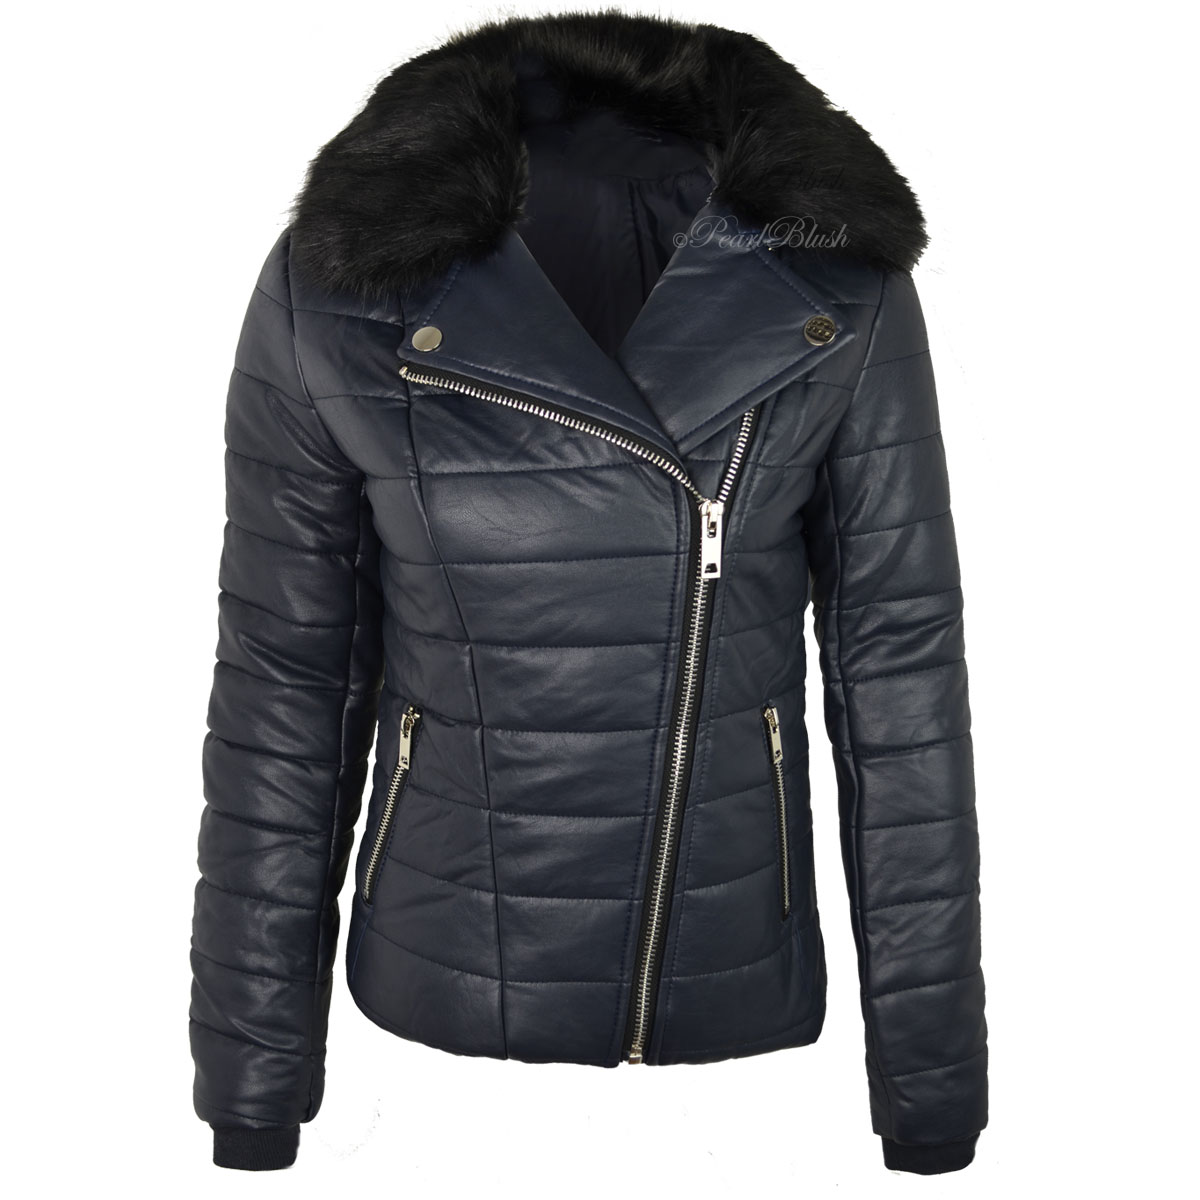 WOMENS-LADIES-FAUX-LEATHER-BOMBER-JACKET-DETACHABLE-FUR- - WOMENS LADIES FAUX LEATHER BOMBER JACKET DETACHABLE FUR COLLAR